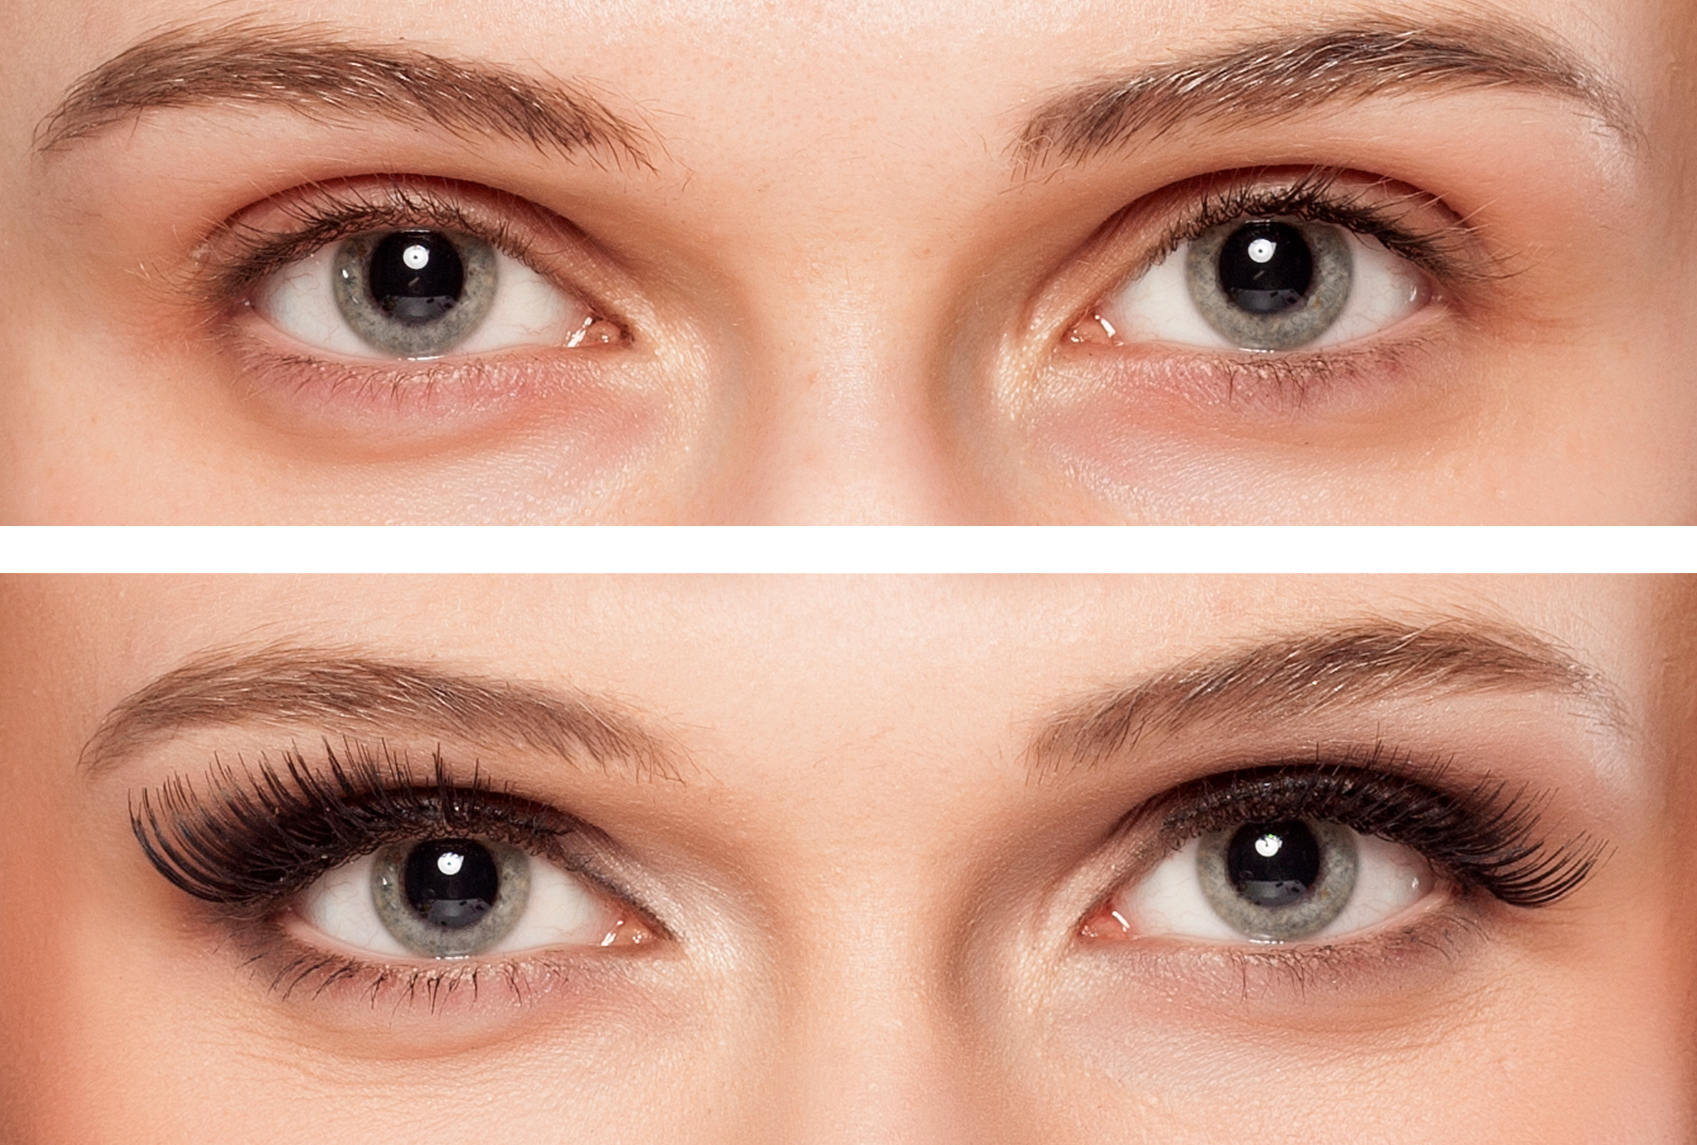 BEFORE AND AFTER: FULL SET OF EYELASH EXTENTIONS